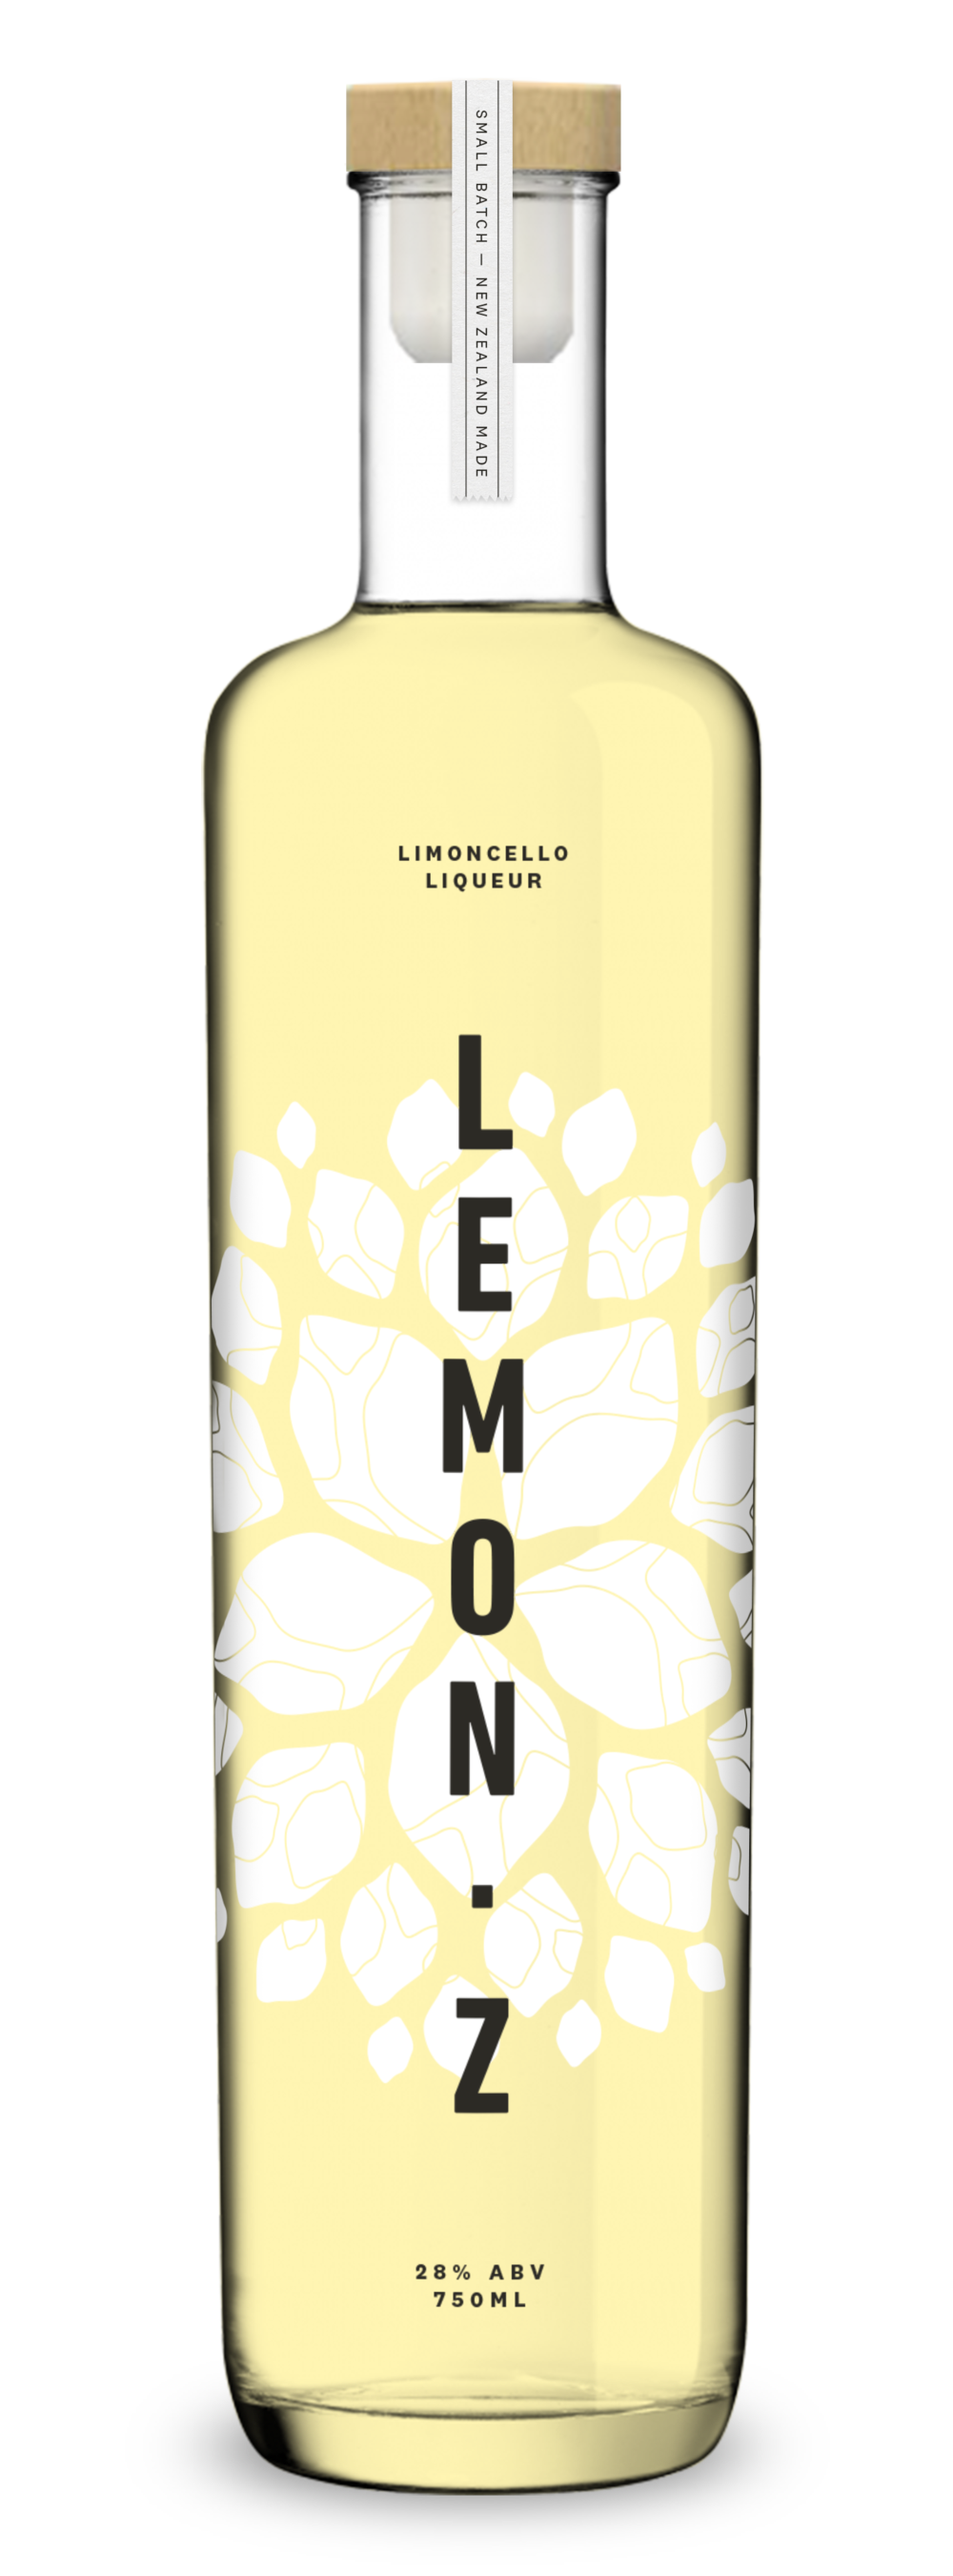 Those tasty lemons get squeezed and pressed into our beautiful bottles.